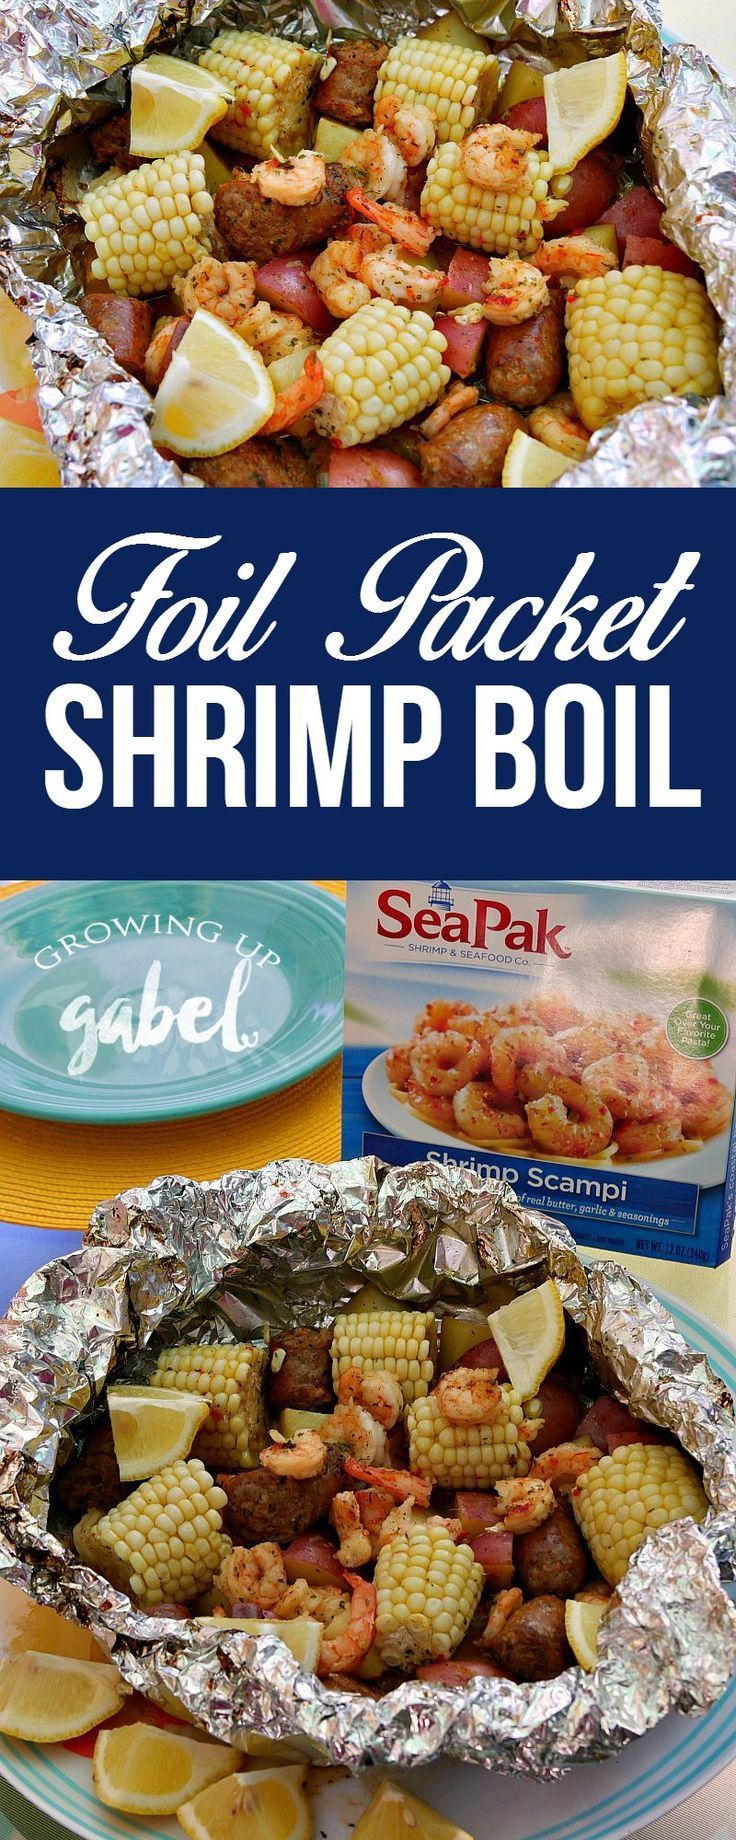 Frozen shrimp makes this foil packet shrimp boil easy to make for the oven, for the grill, or for camping! @SeaPak AD